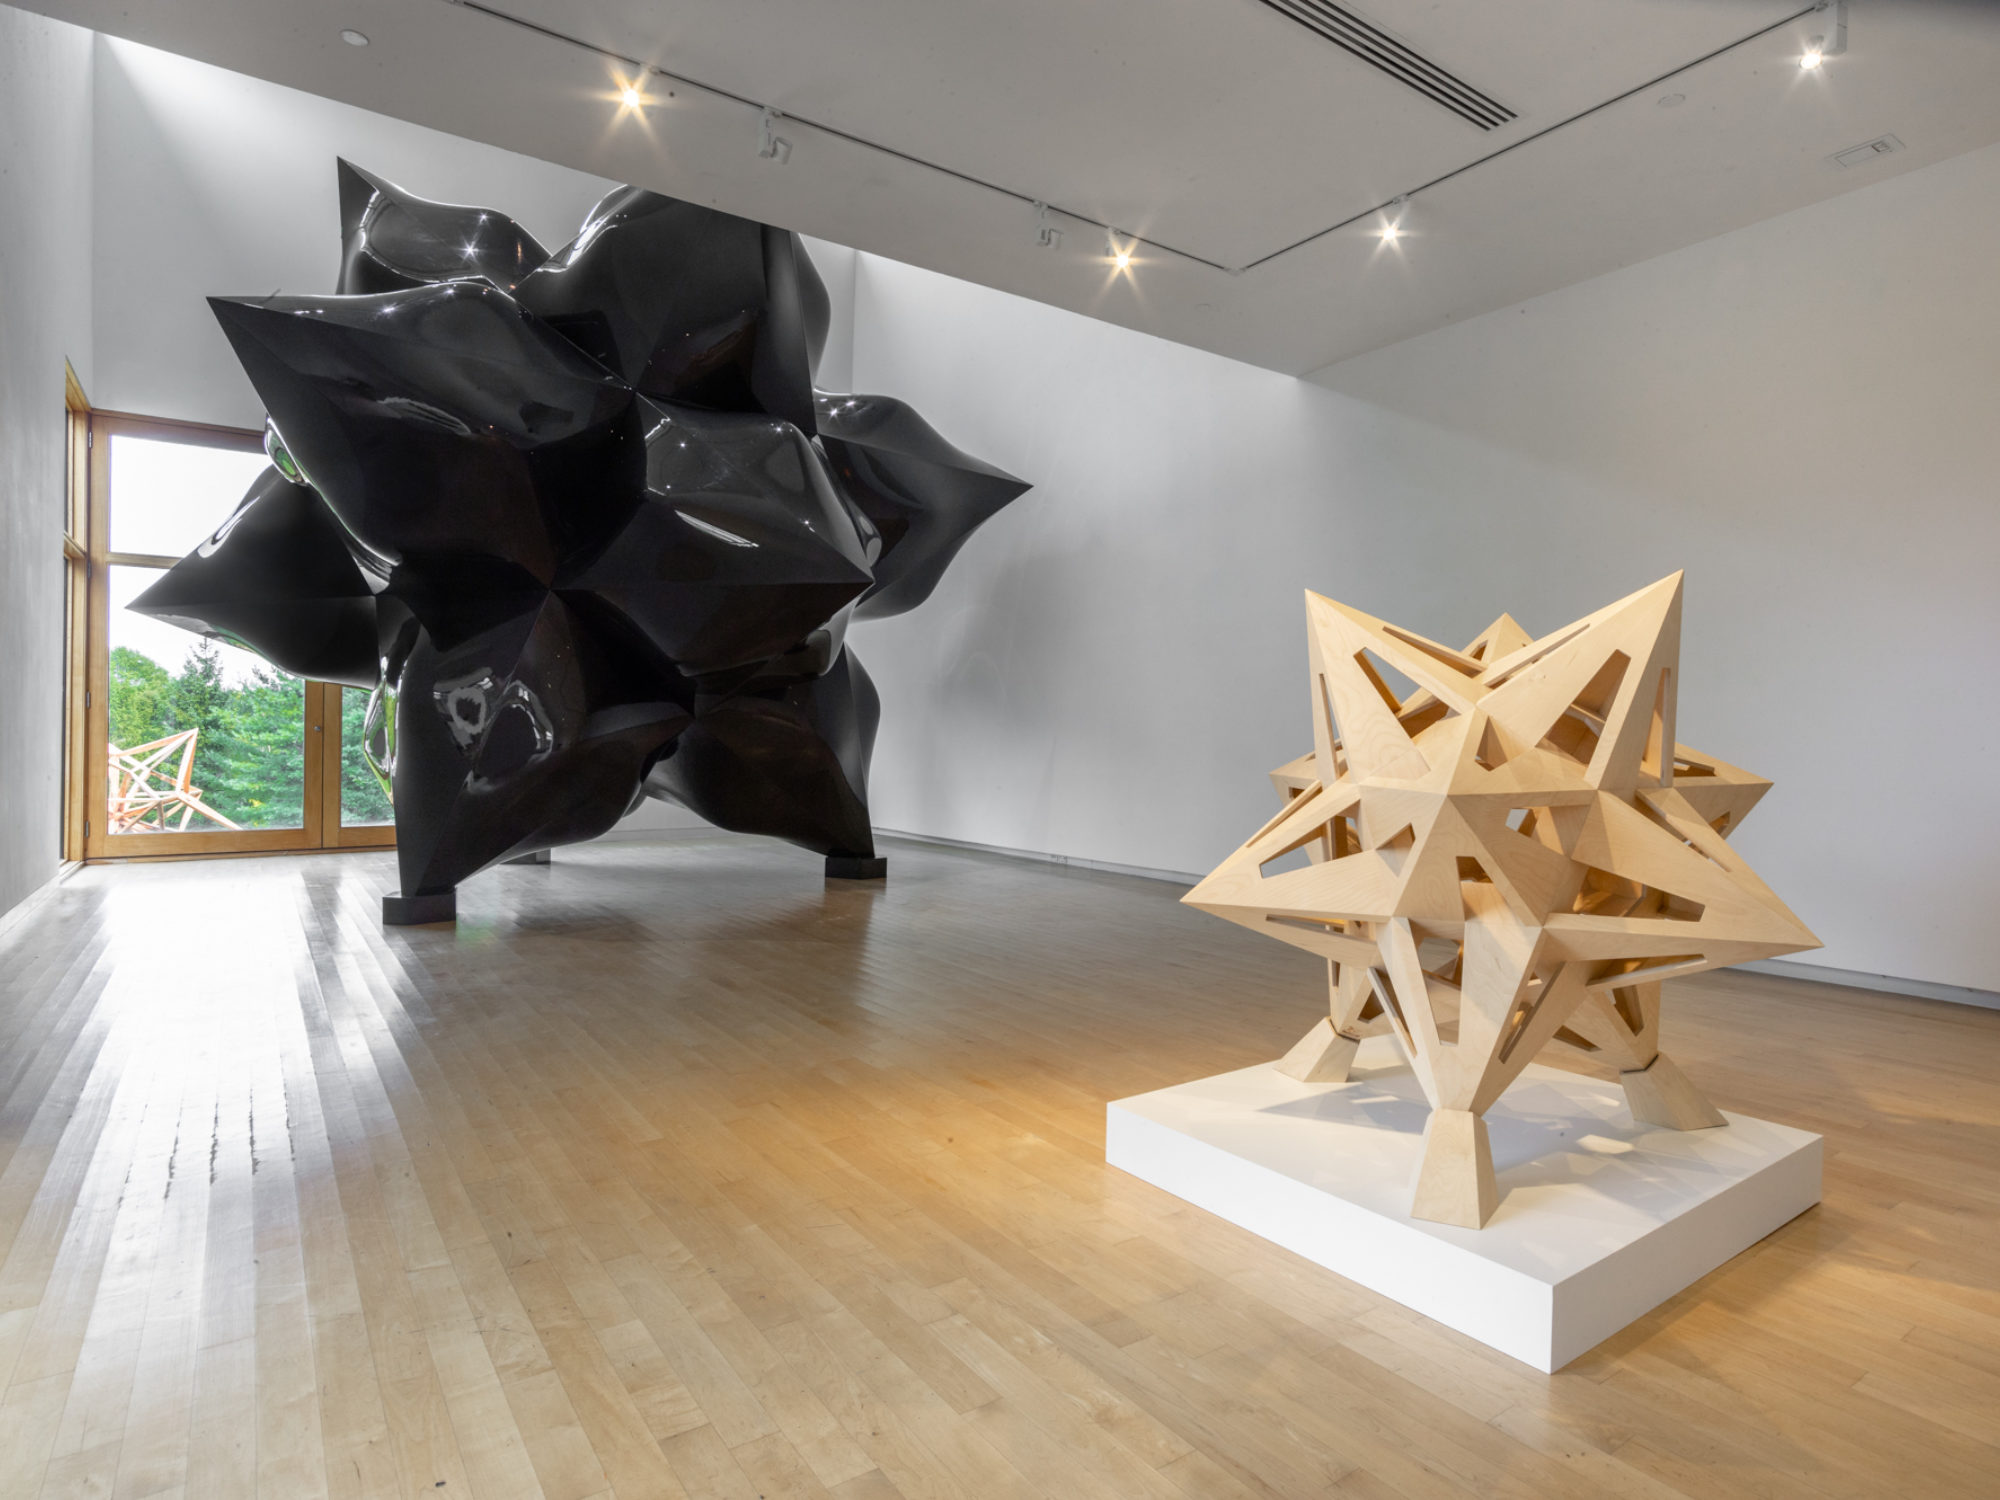 Smaller wooden star sculpture in foreground, large-scale black star sculpture in background.